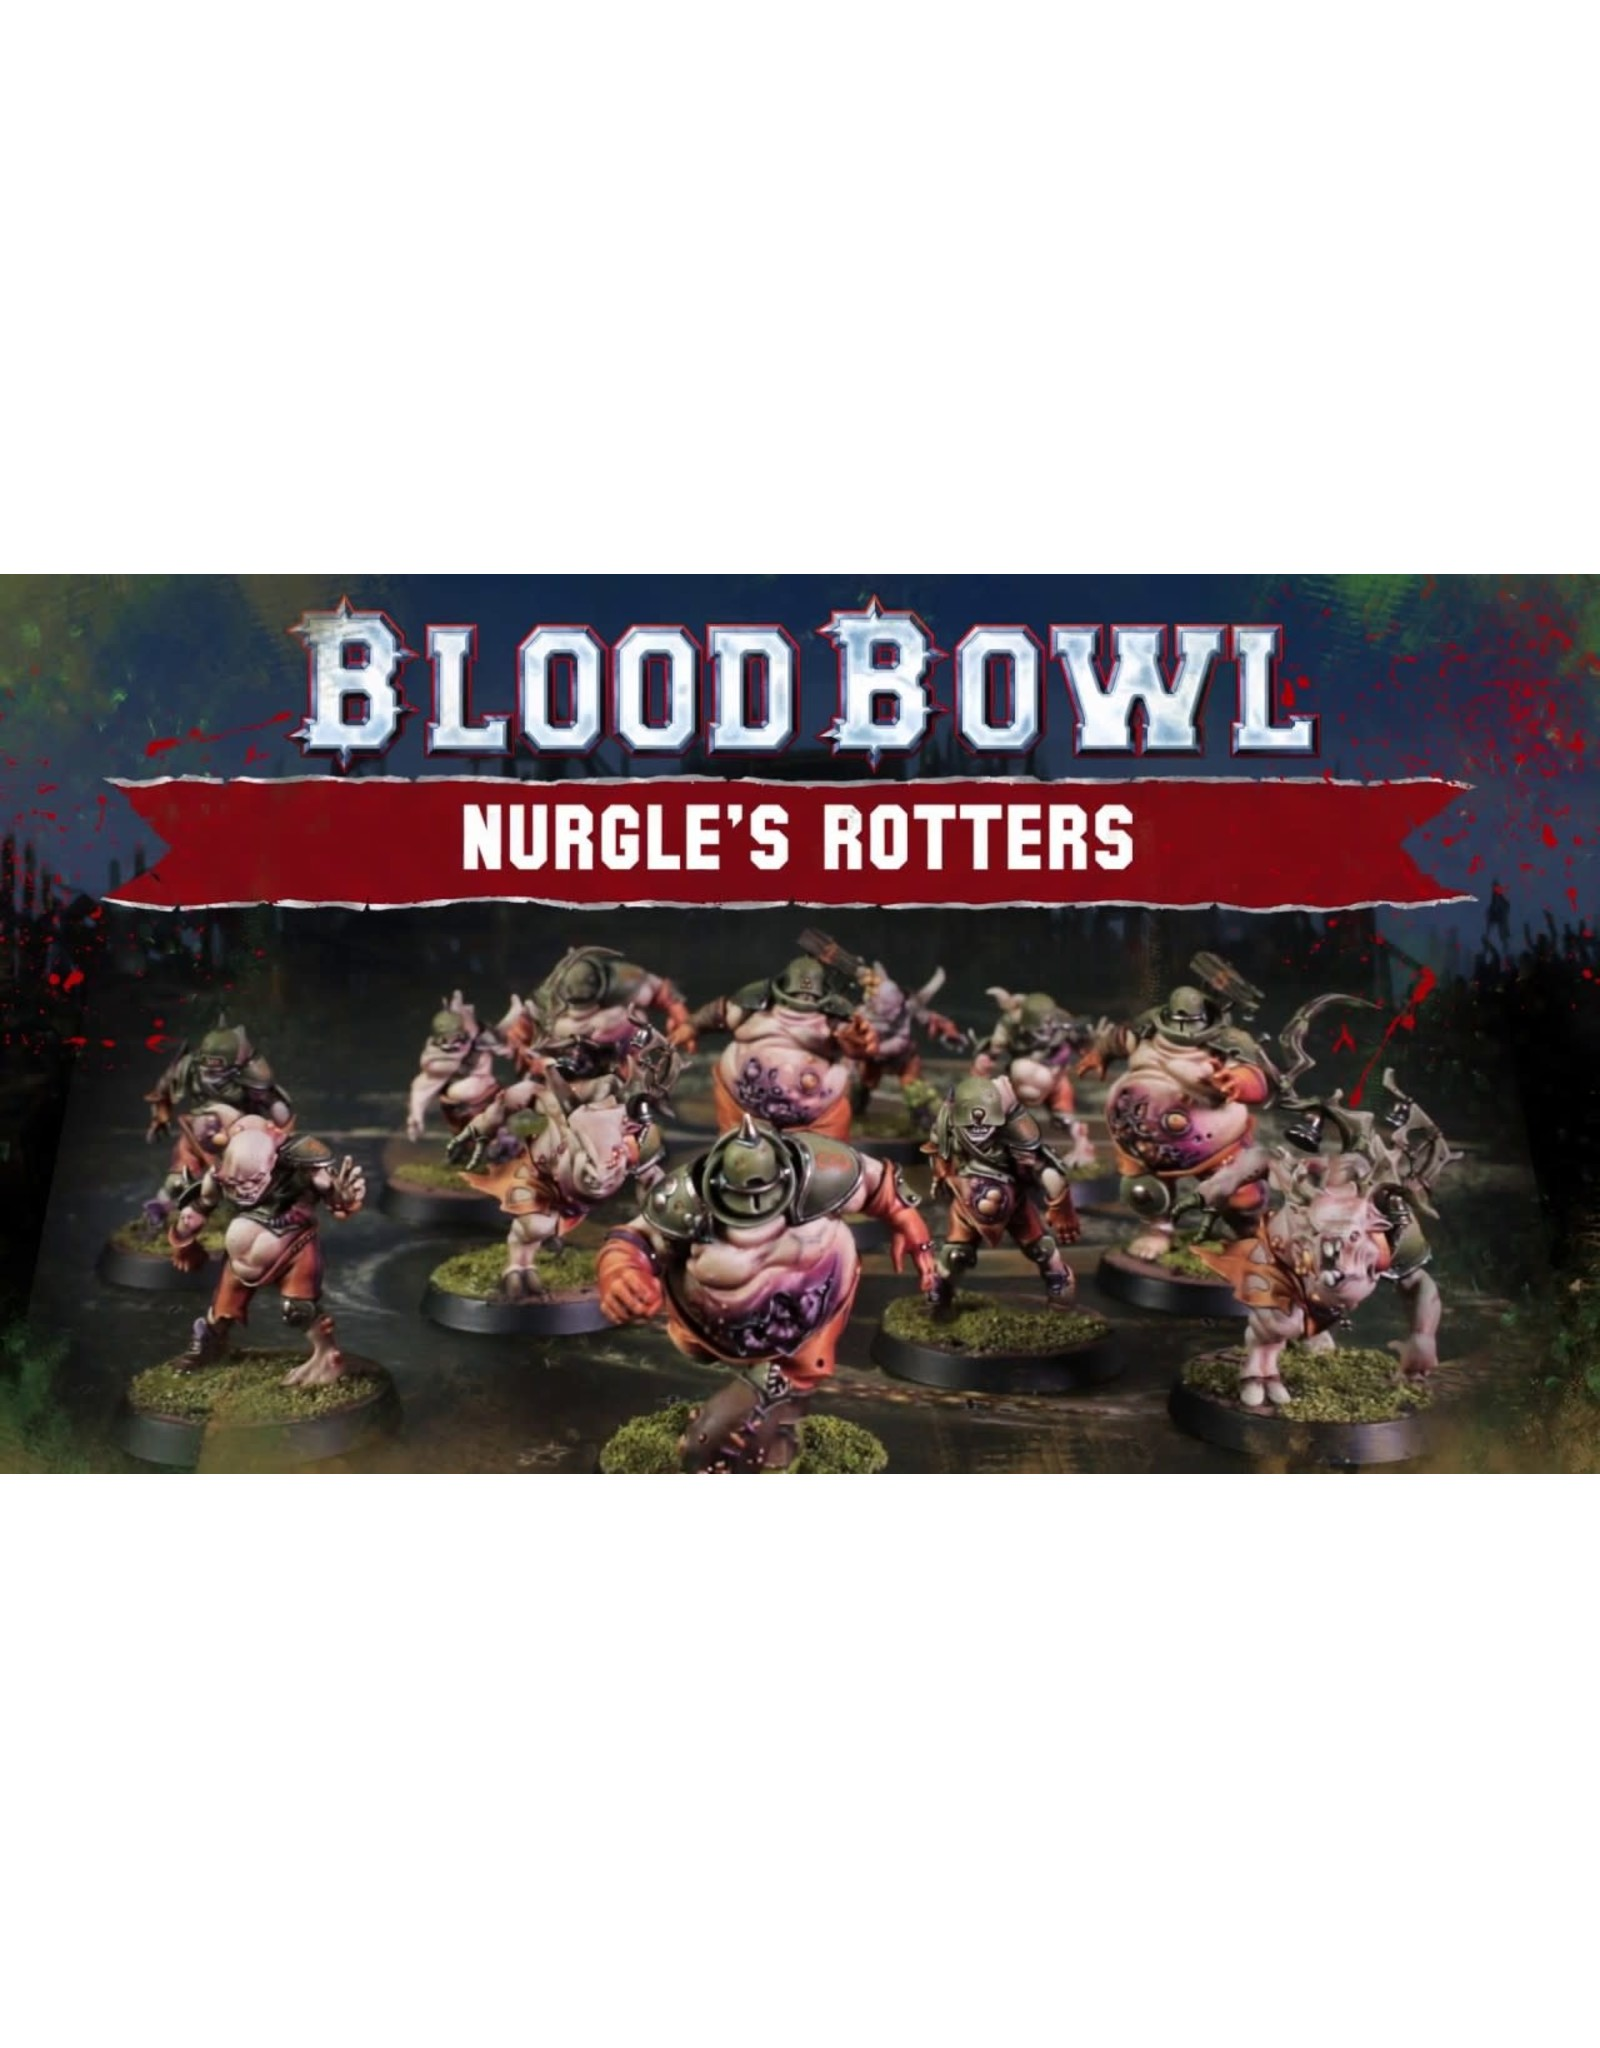 Blood Bowl: Nurgles Rotters